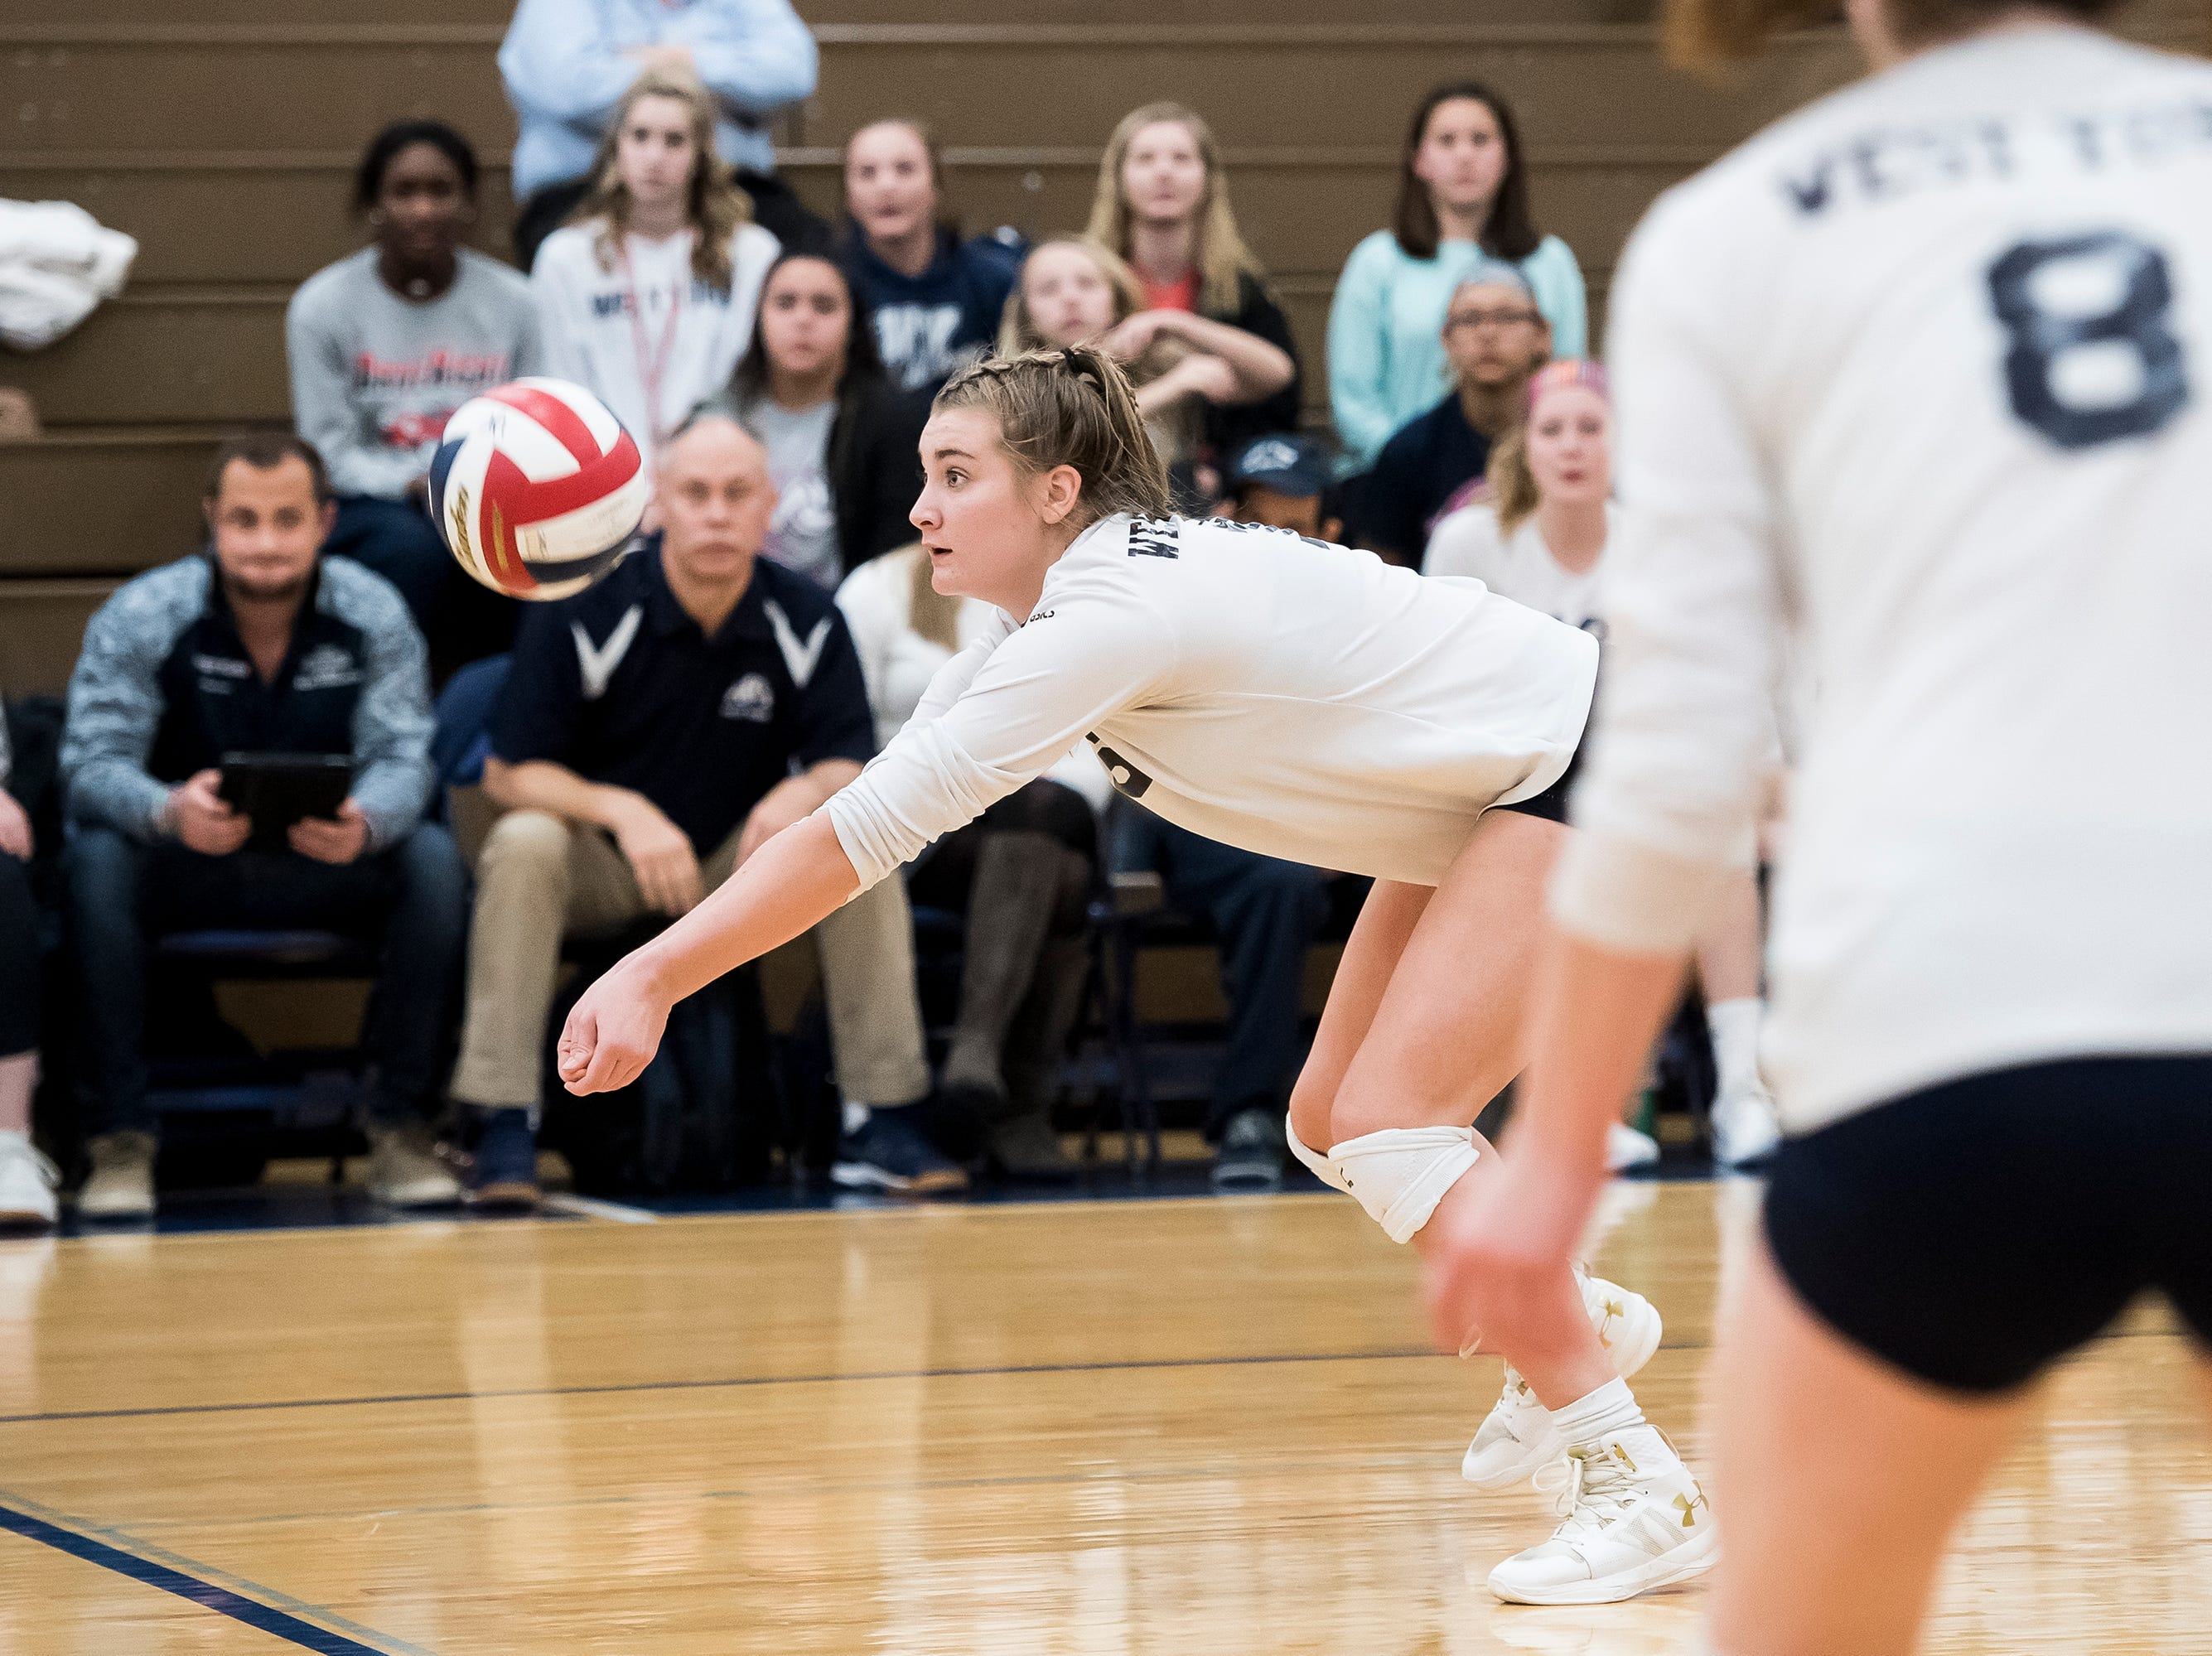 West York's Georgianna Kahley bumps the ball during play against Allentown Central Catholic in a PIAA 3A semifinal game at Exeter Township High School in Reading on Tuesday, November 13, 2018.